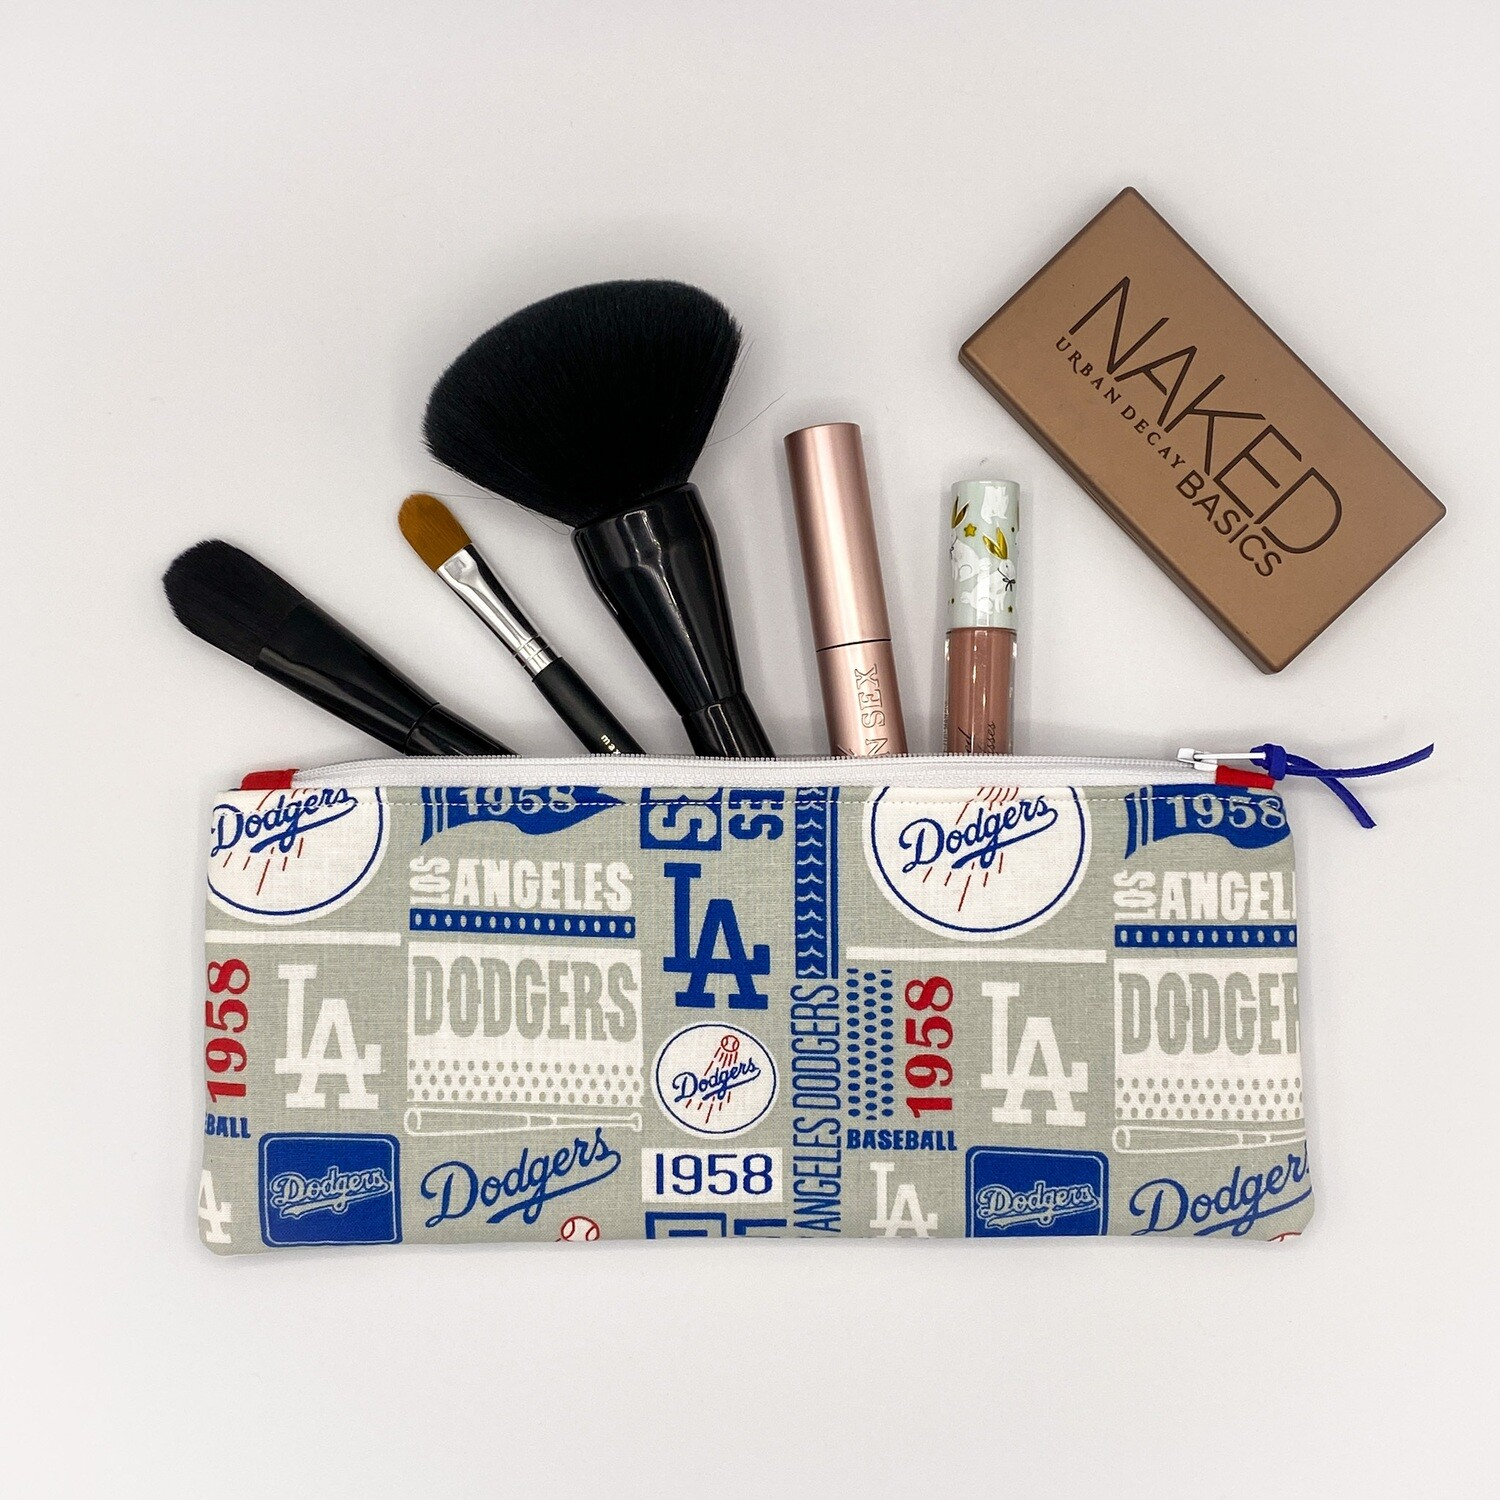 Los Angeles LA Dodgers MLB Baseball Handmade Flat Zipper Pencil / Makeup Pouch, Fully lined with Easy Clean Ripstop